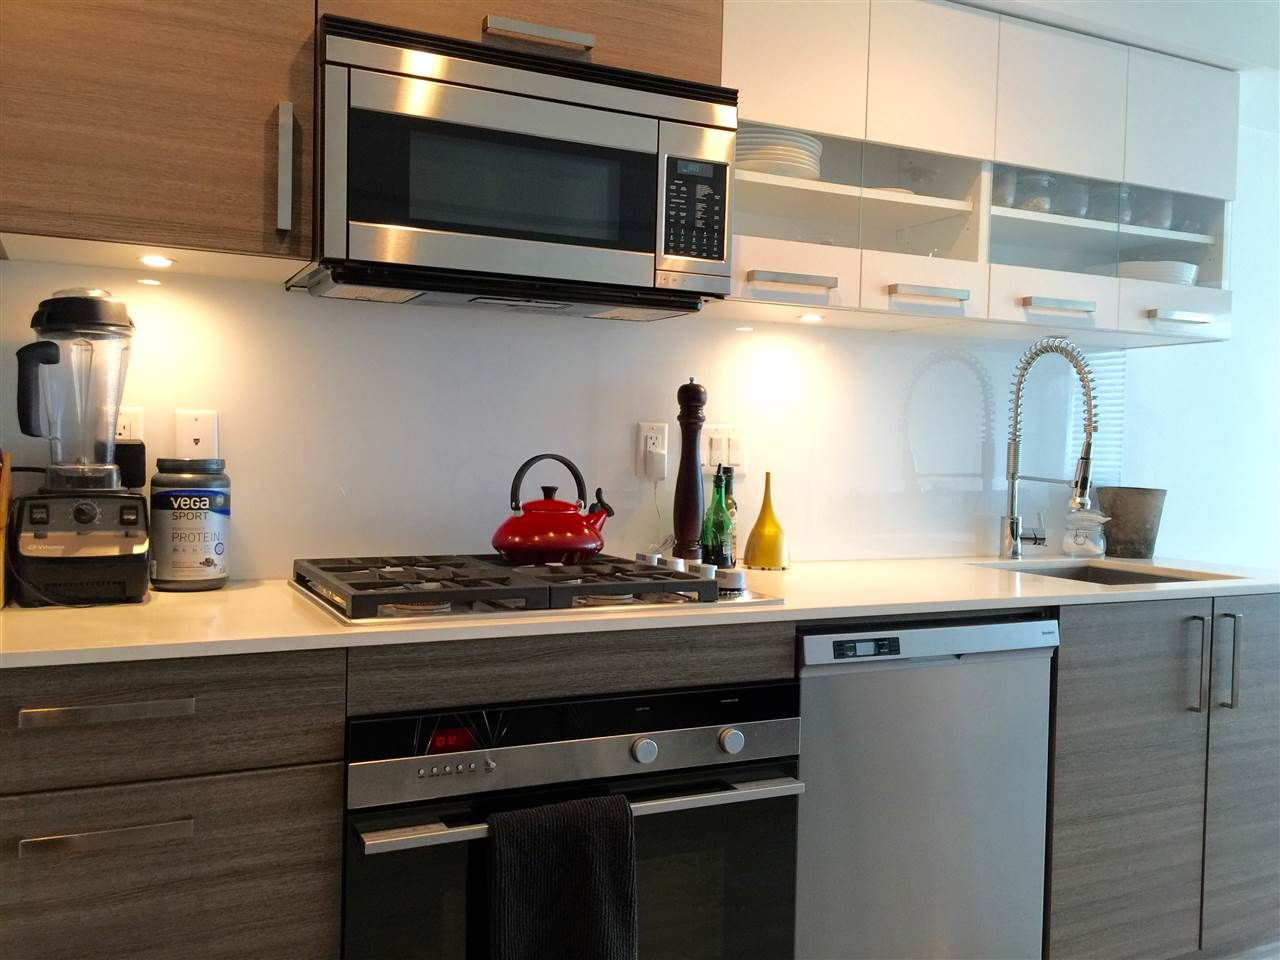 """Photo 10: Photos: 202 2858 W 4TH Avenue in Vancouver: Kitsilano Condo for sale in """"Kits West"""" (Vancouver West)  : MLS®# R2085977"""